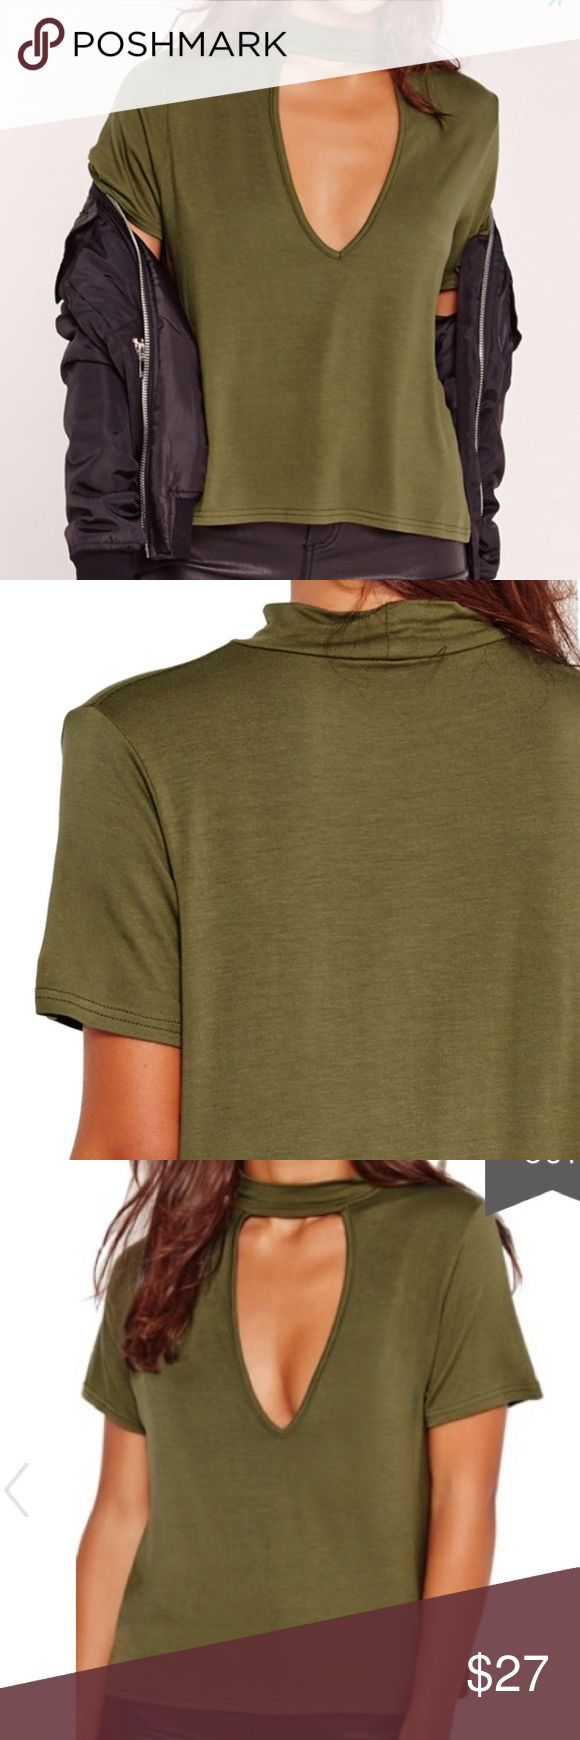 """Missguided Choker Tee Edgy and sexy! This viscose blend tee has a shorter boxy shape and a deep V with a choker style neck. On trend I live green is actually named """"khaki"""". Missguided Tops"""